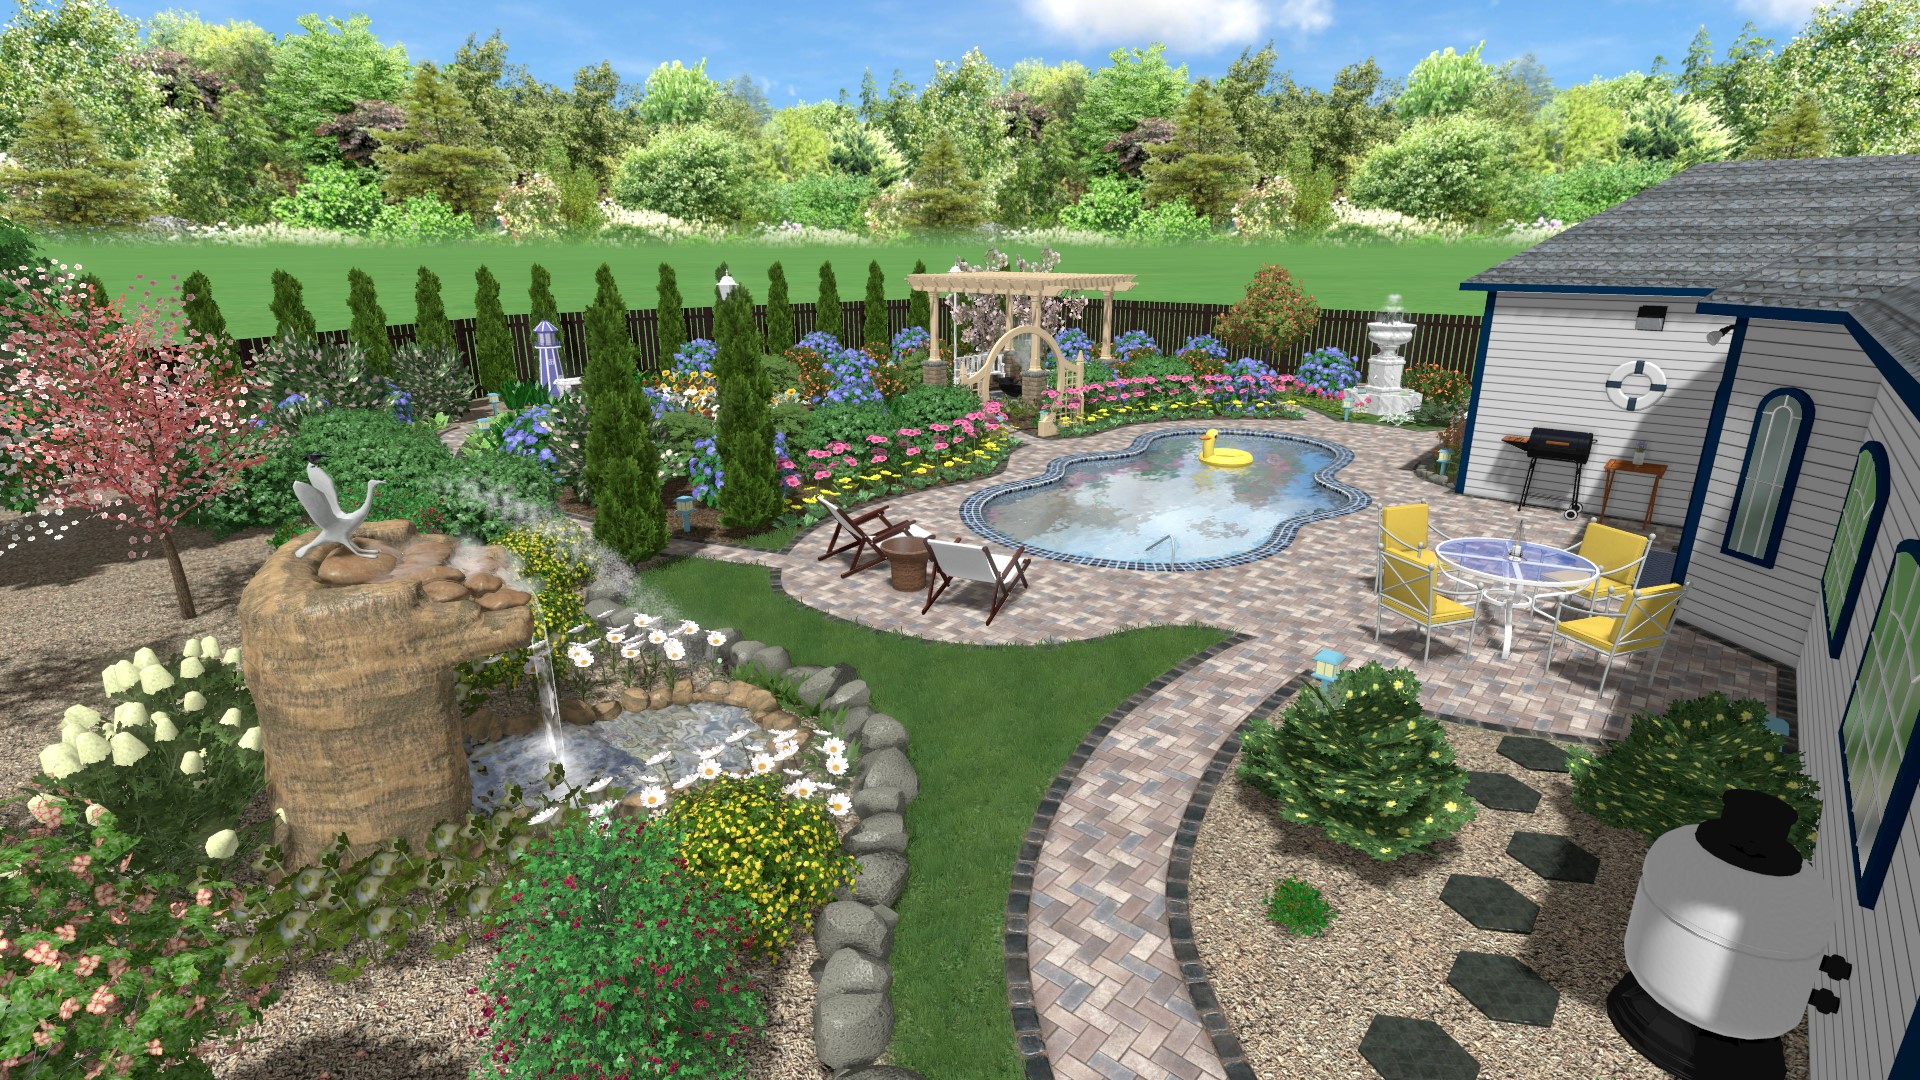 Pool and Backyard - 3D S&le Landscape & Landscape Design Software Gallery